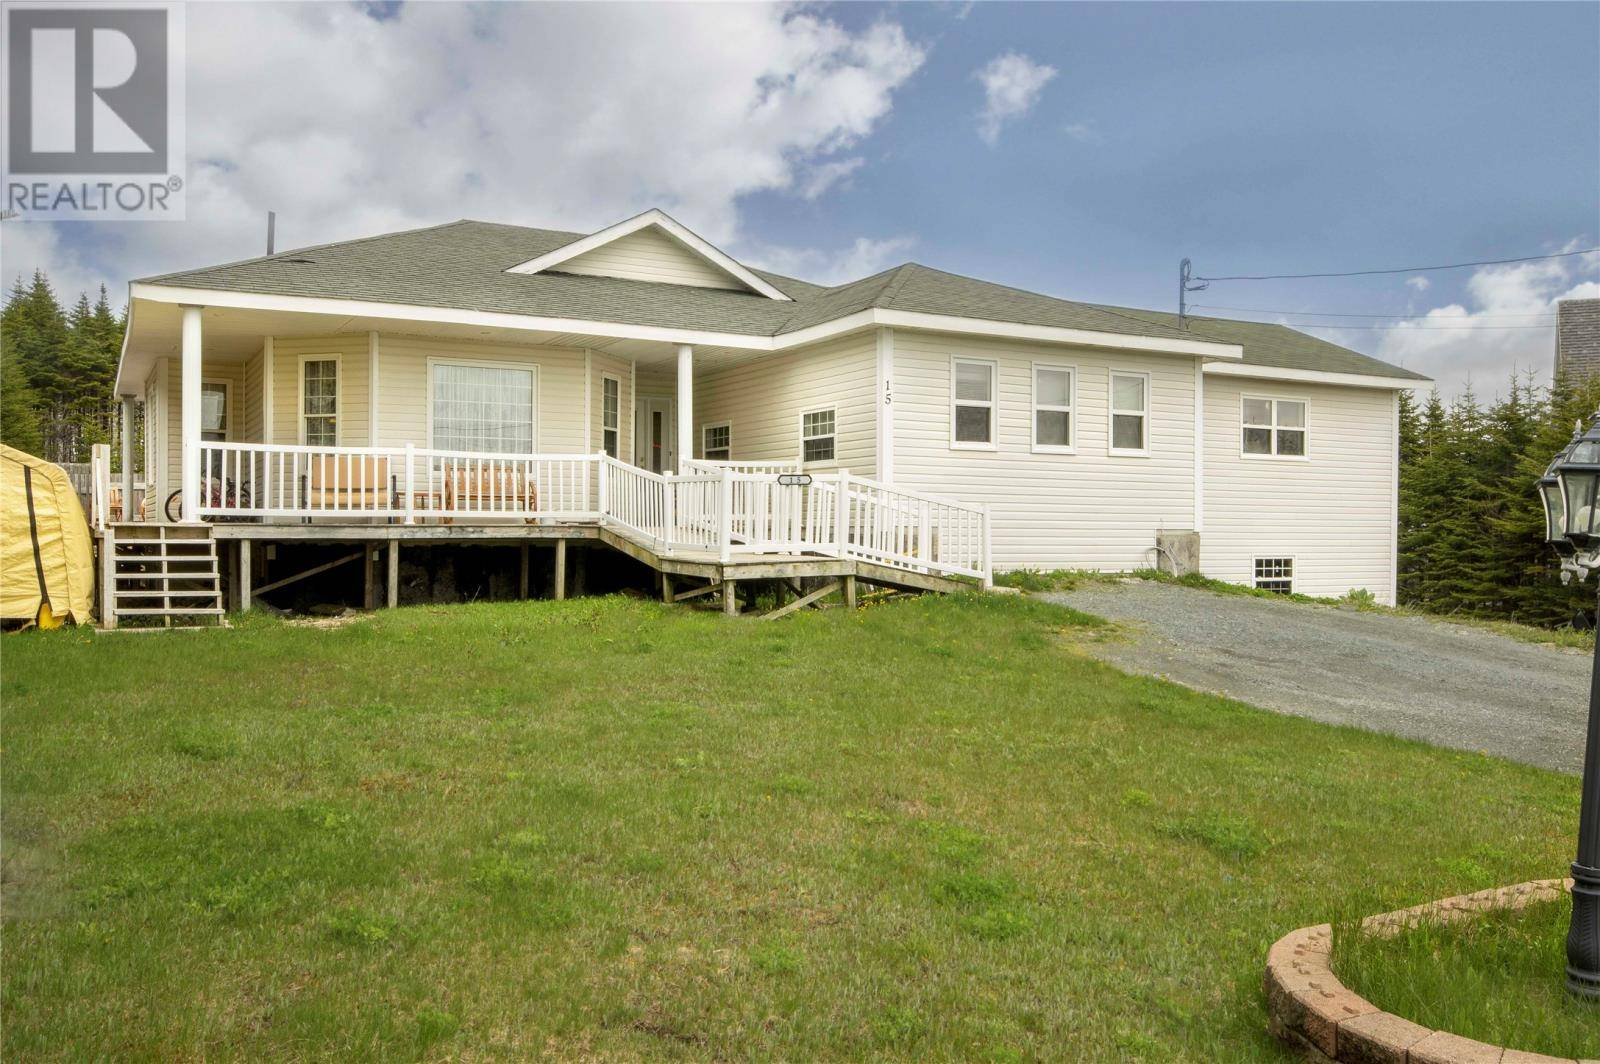 House for sale at 15 Chesley Van Ht Portugal Cove Newfoundland - MLS: 1211926